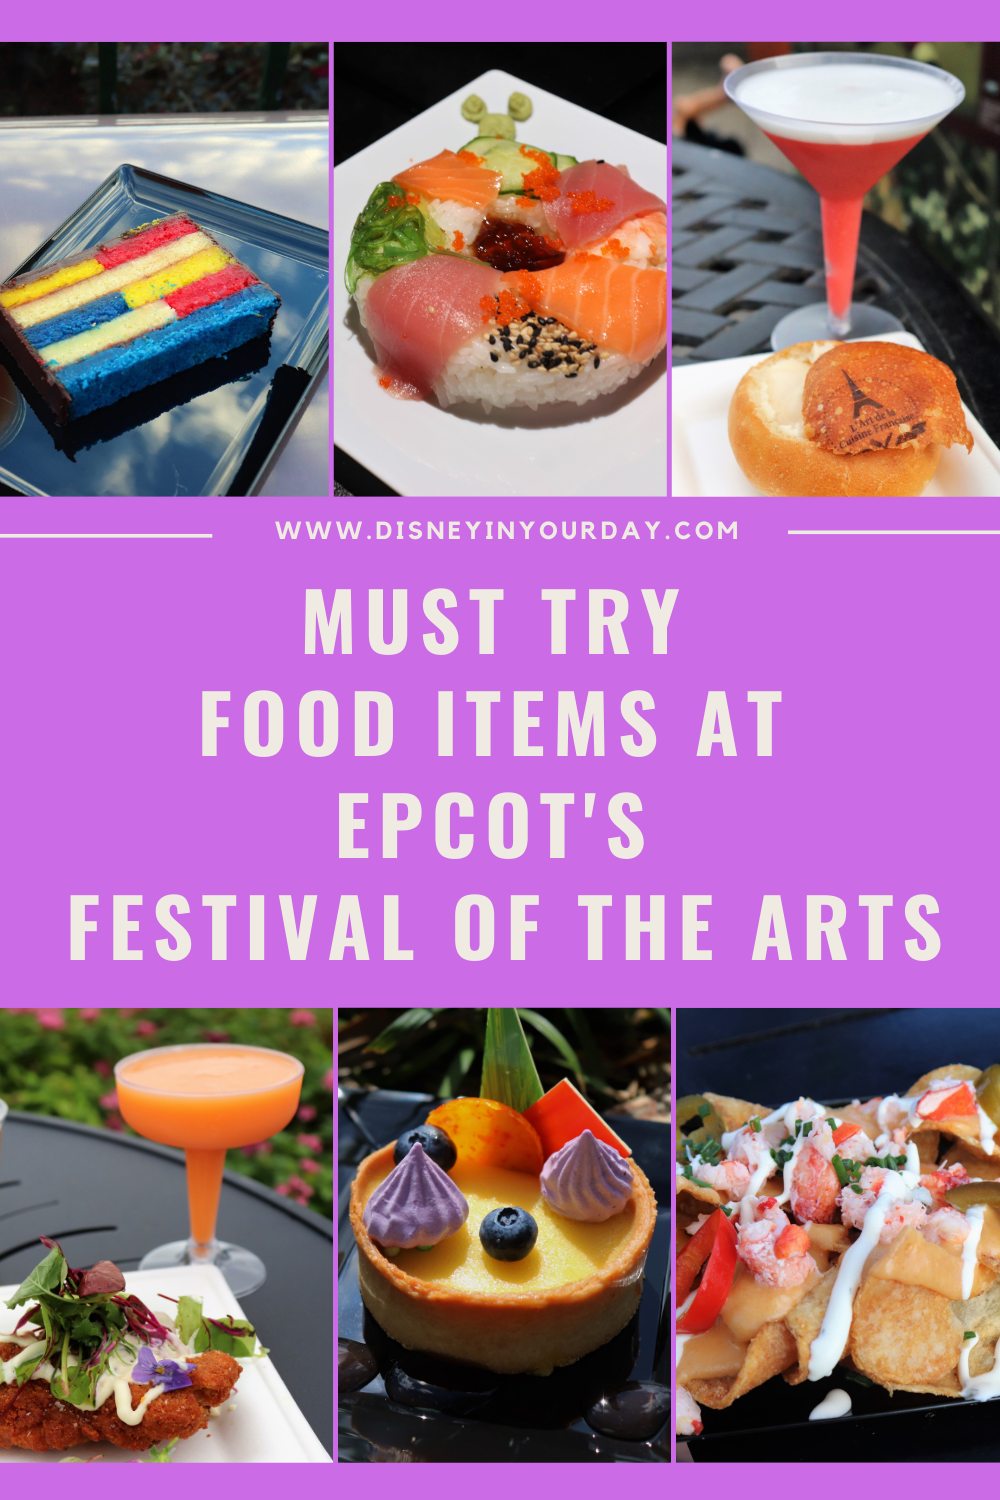 Must Eats At Epcot S 2021 Festival Of The Arts Food Booths This Year Disney In Your Day